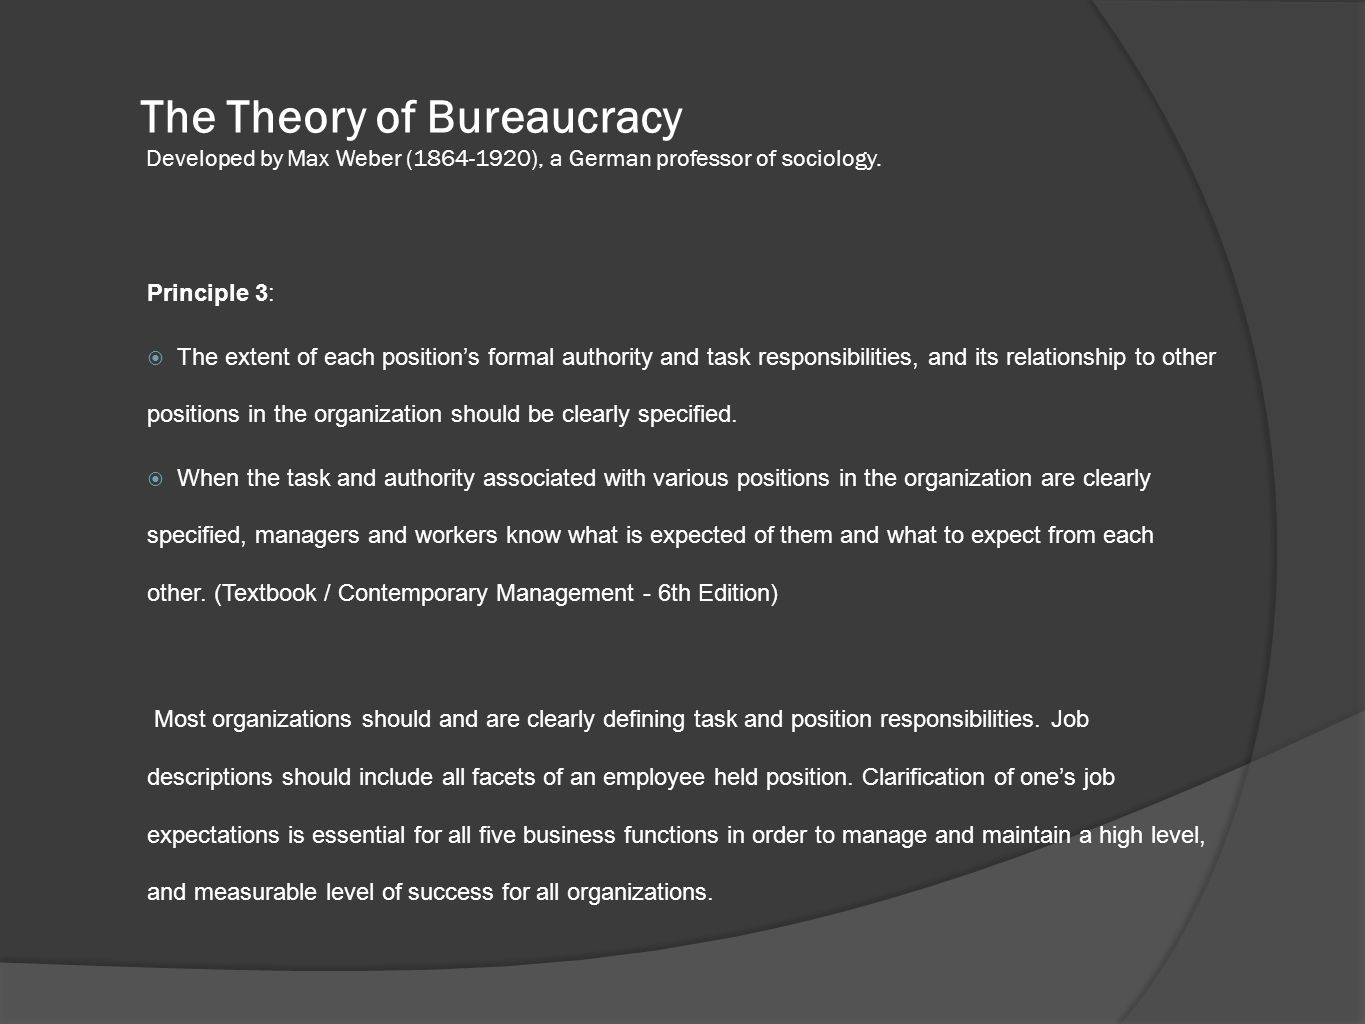 The Theory of Bureaucracy Developed by Max Weber (1864-1920), a German professor of sociology.